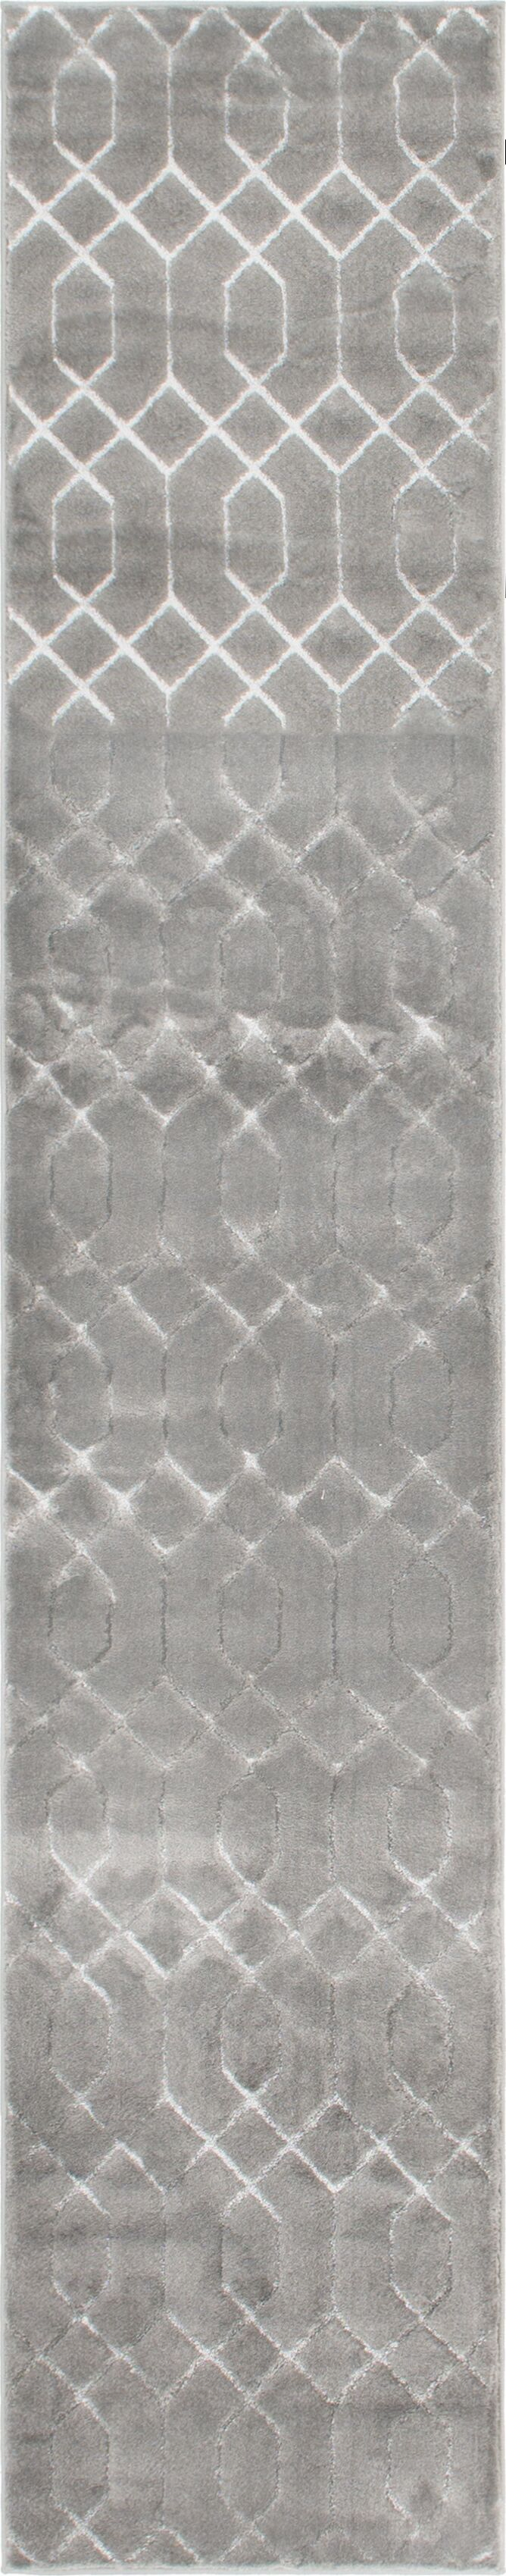 Glam Gray Area Rug Rug Size: Runner 2' x 10'